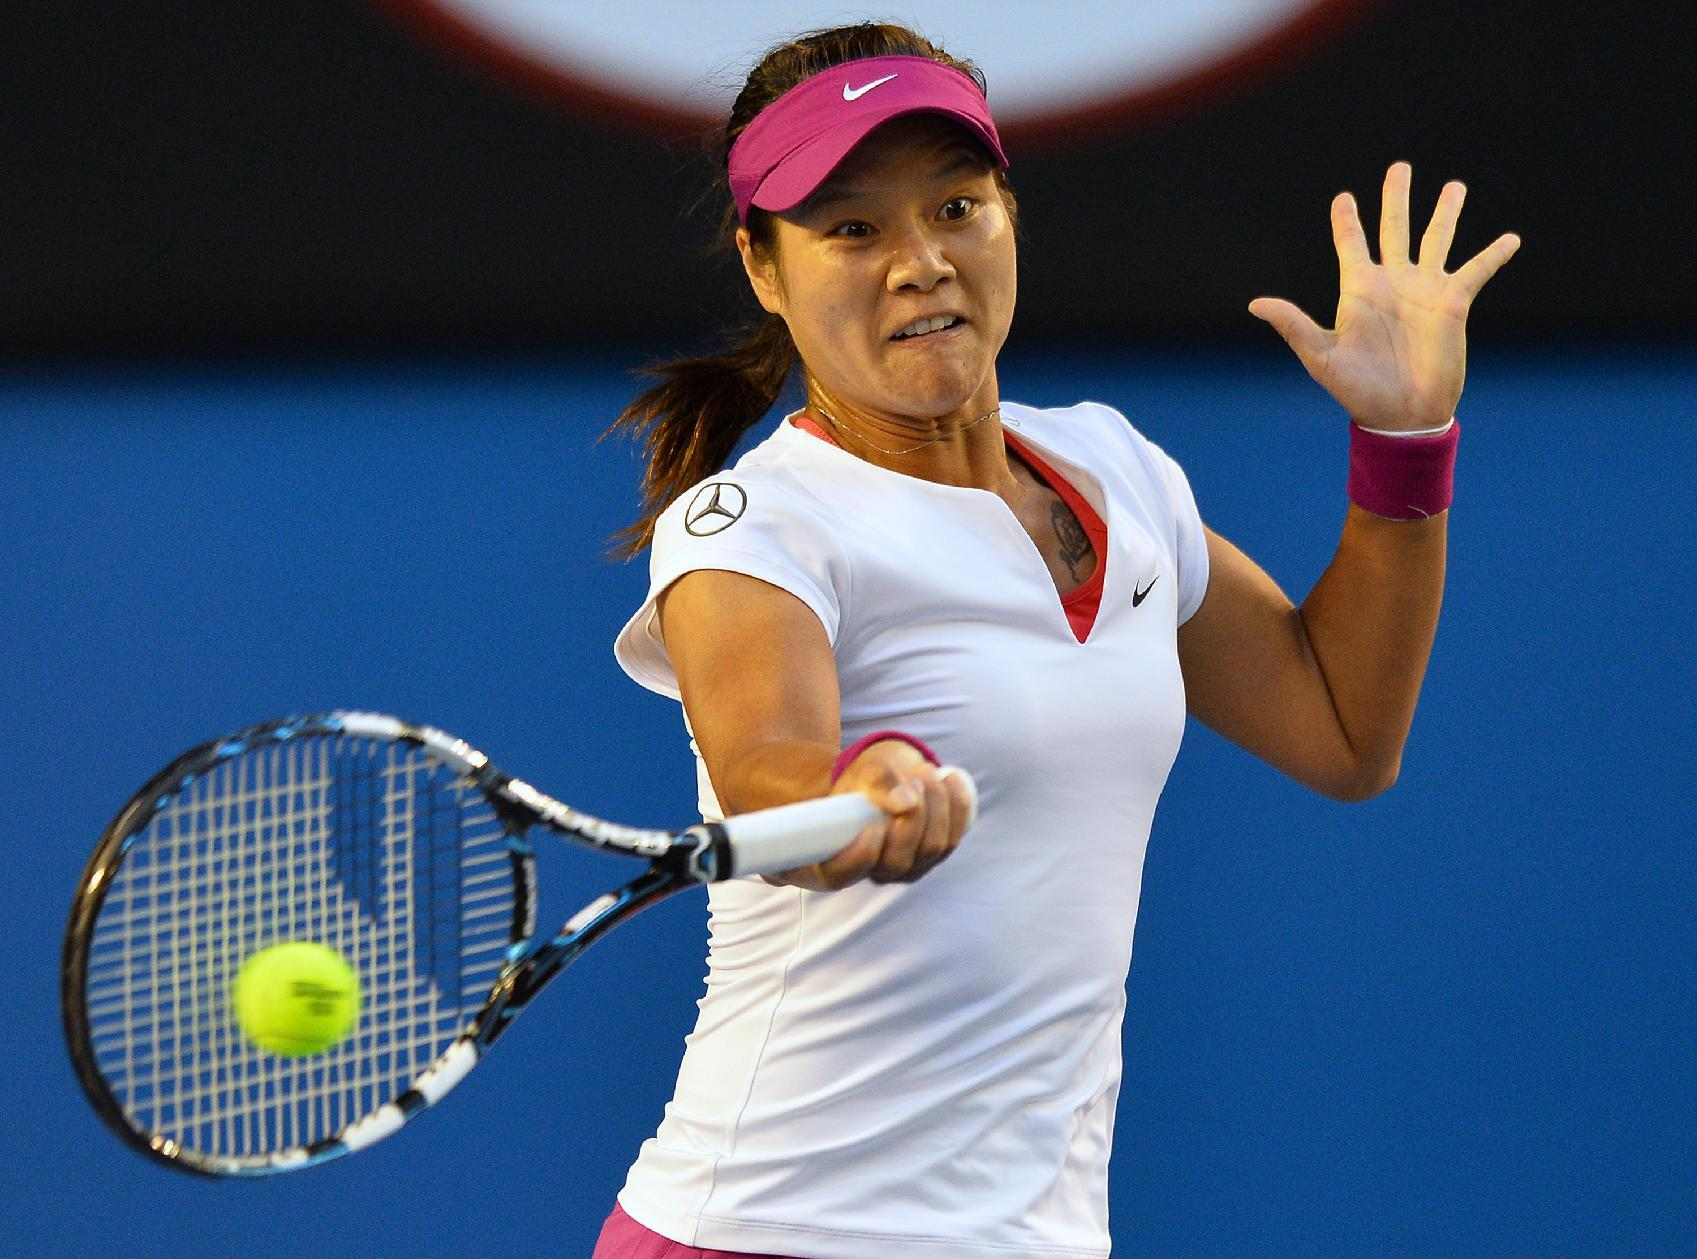 Li na vs cibulkova betting advice solve math problems for bitcoins